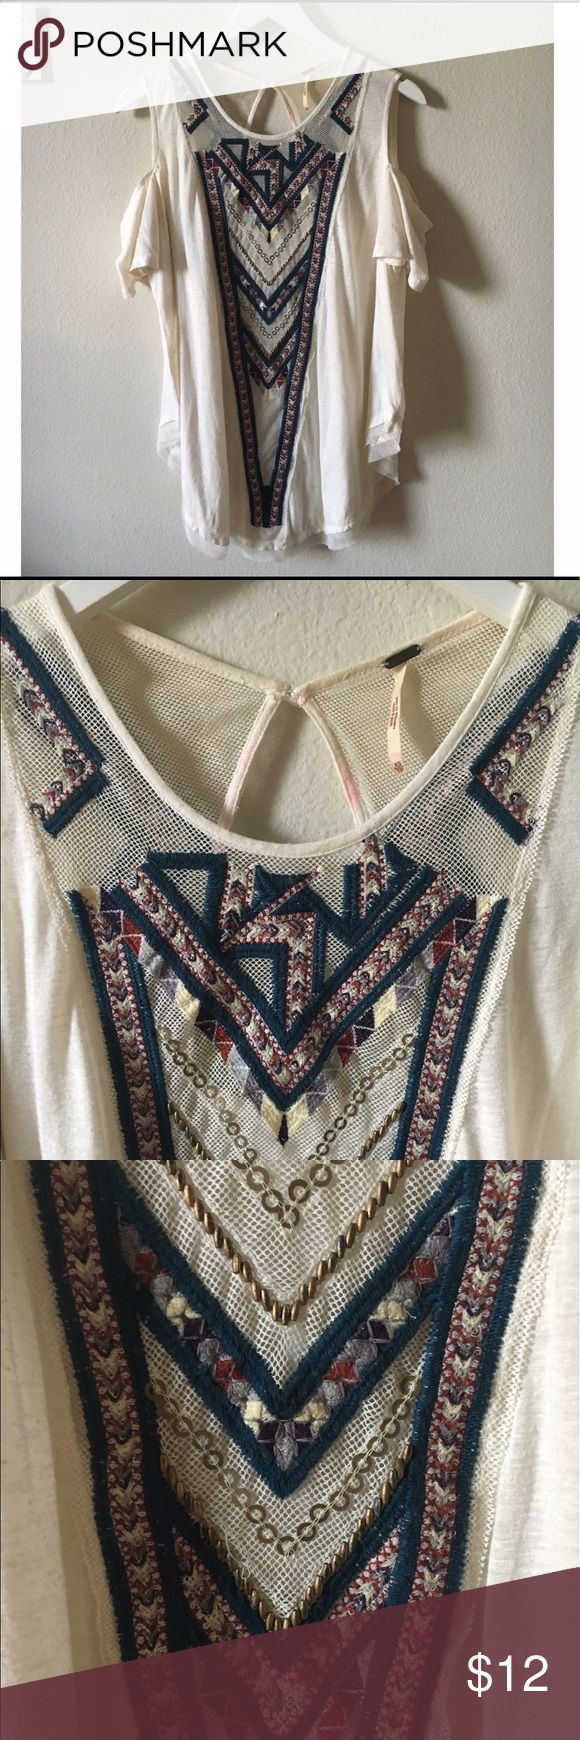 FP embroidered cold shoulder tunic FP cold shoulder tunic top.Size XS fits true.fair condition.minor staining ONLY on the inside (in pic) u cant see it on the back & there are no missing beads or threads on the front appliqué. No other staining. No trades-offers accepted!**EVERYTHING I SELL IS IN FAIR TO GREAT CONDITION.I WILL ALWAYS SPECIFY ANY WEAR/TEAR.MY PRICES ARE SO LOW BECAUSE I AM A STAY AT HOME MOM & AM TRYING TO MAKE EXTRA INCOME TO SUPPORT MY LITTLE FAMILY!THANKS FOR CONTRIBUTING…